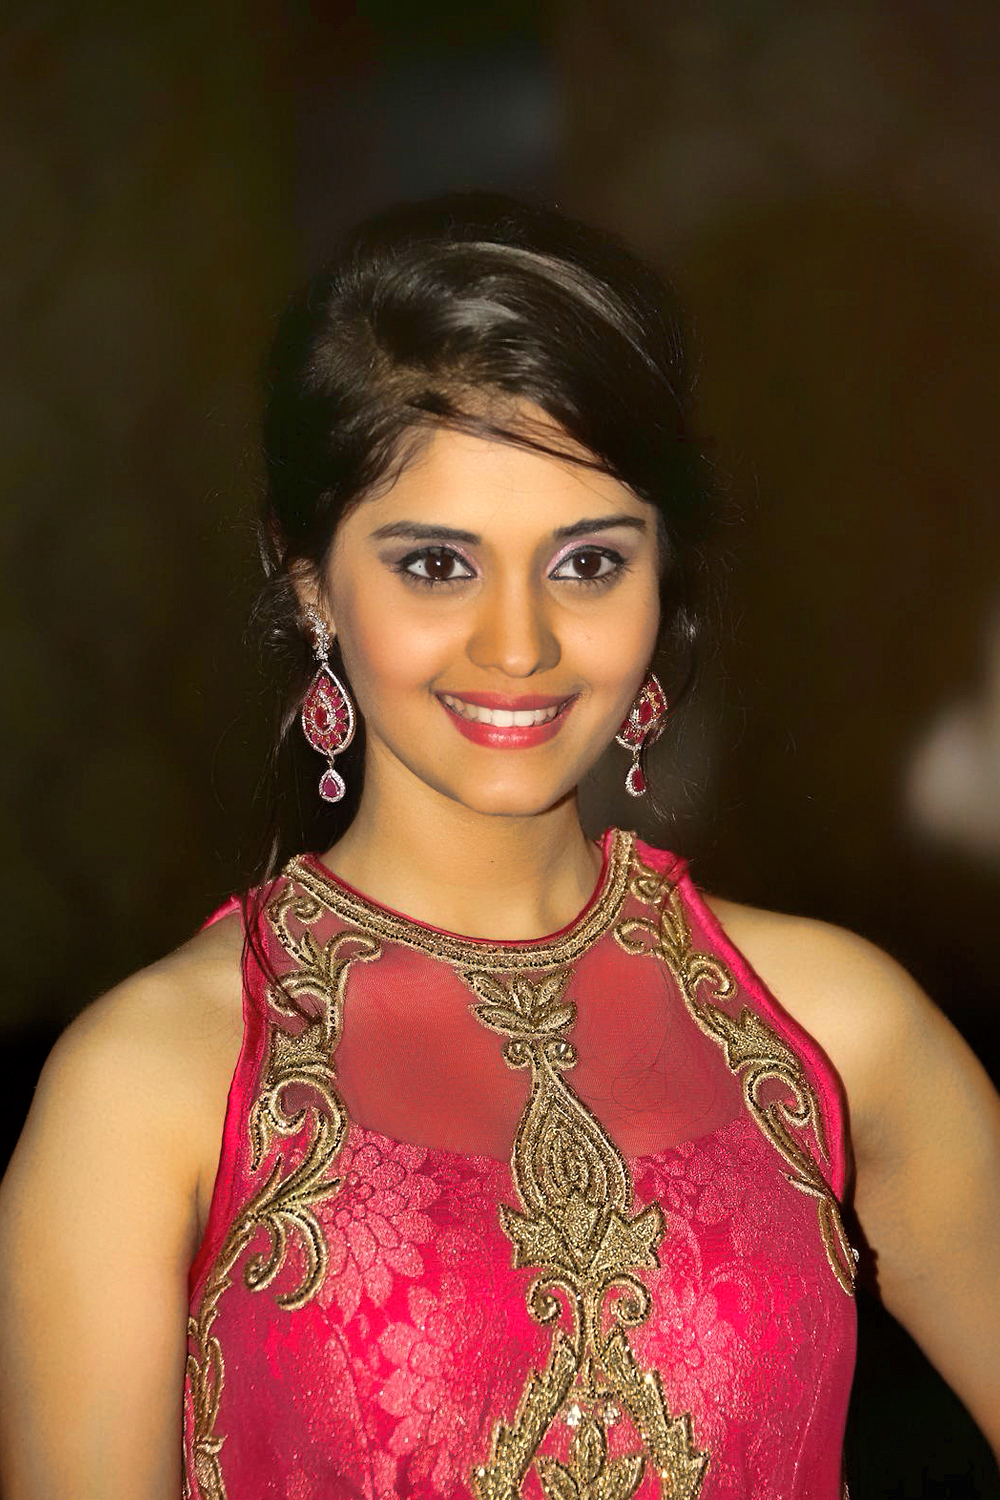 surabhi hd wallpapers | hd wallpapers (high definition) | free